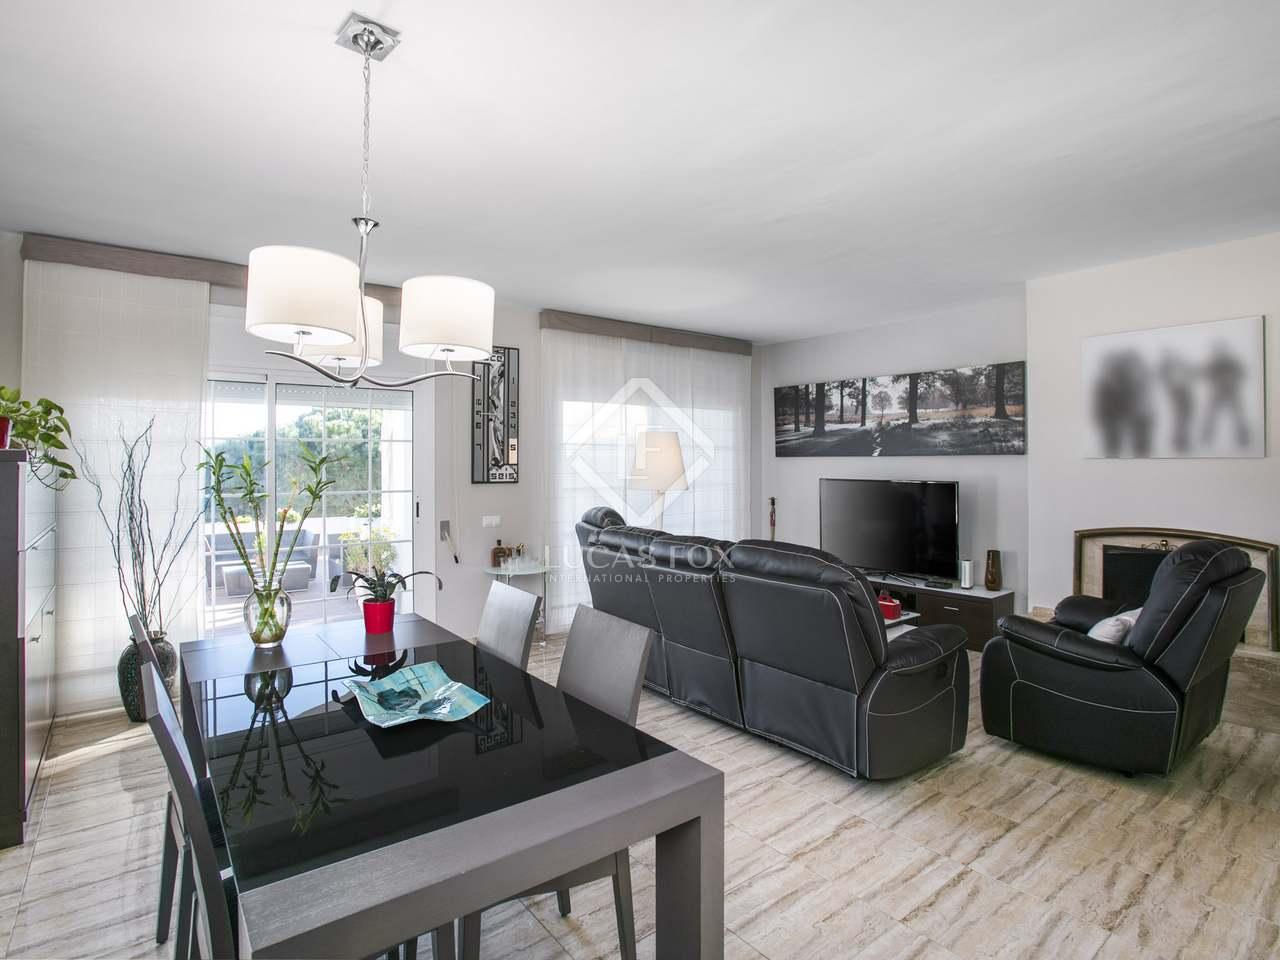 Excellent 4 Bedroom Family Home With A Pool For In Premia De Dalt